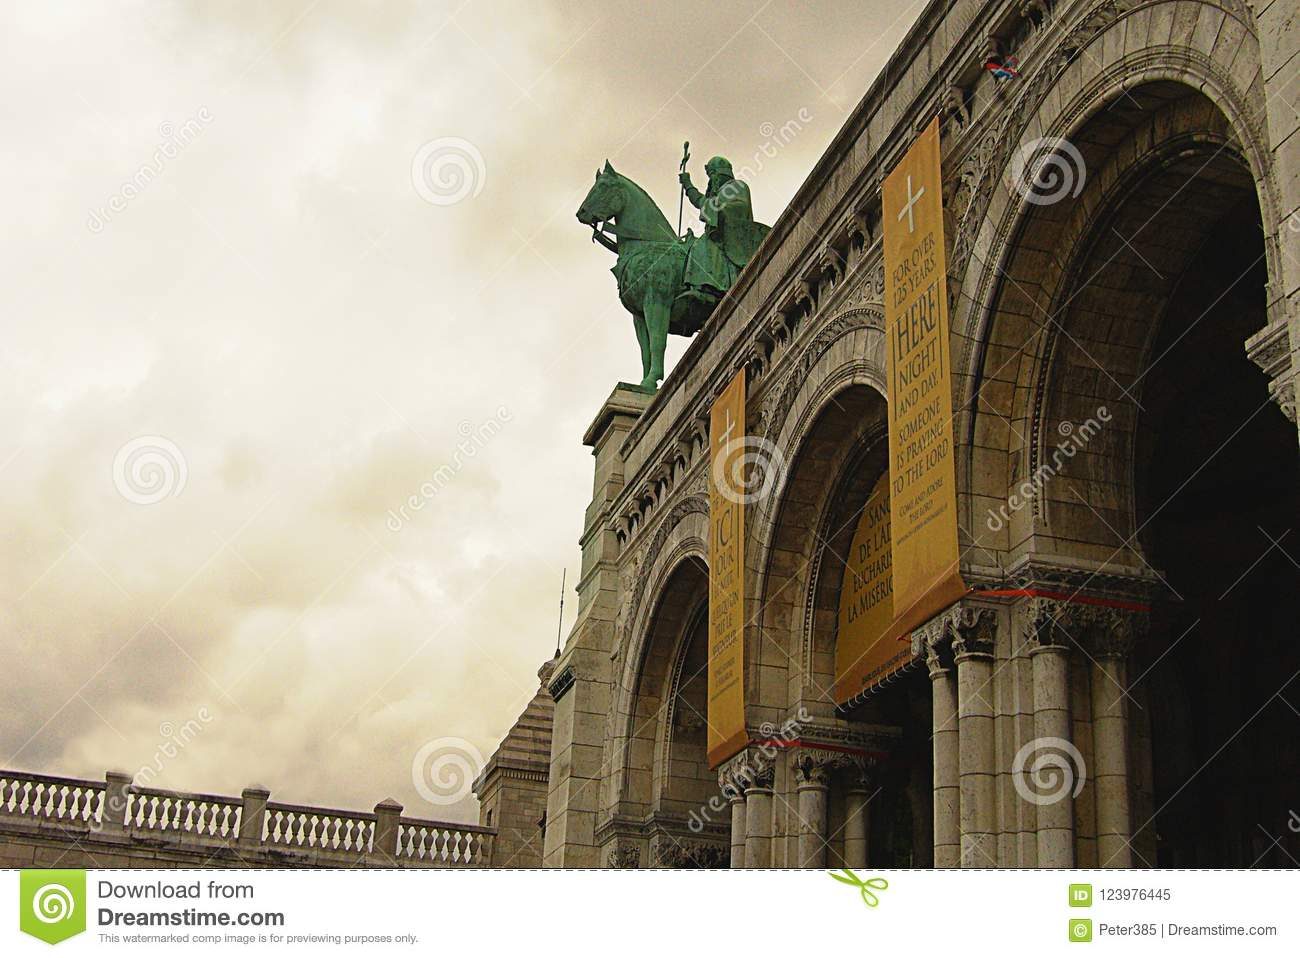 Download Iron Statue Of Rider Riding Editorial Image - Image of architecture, landmark: 123976445